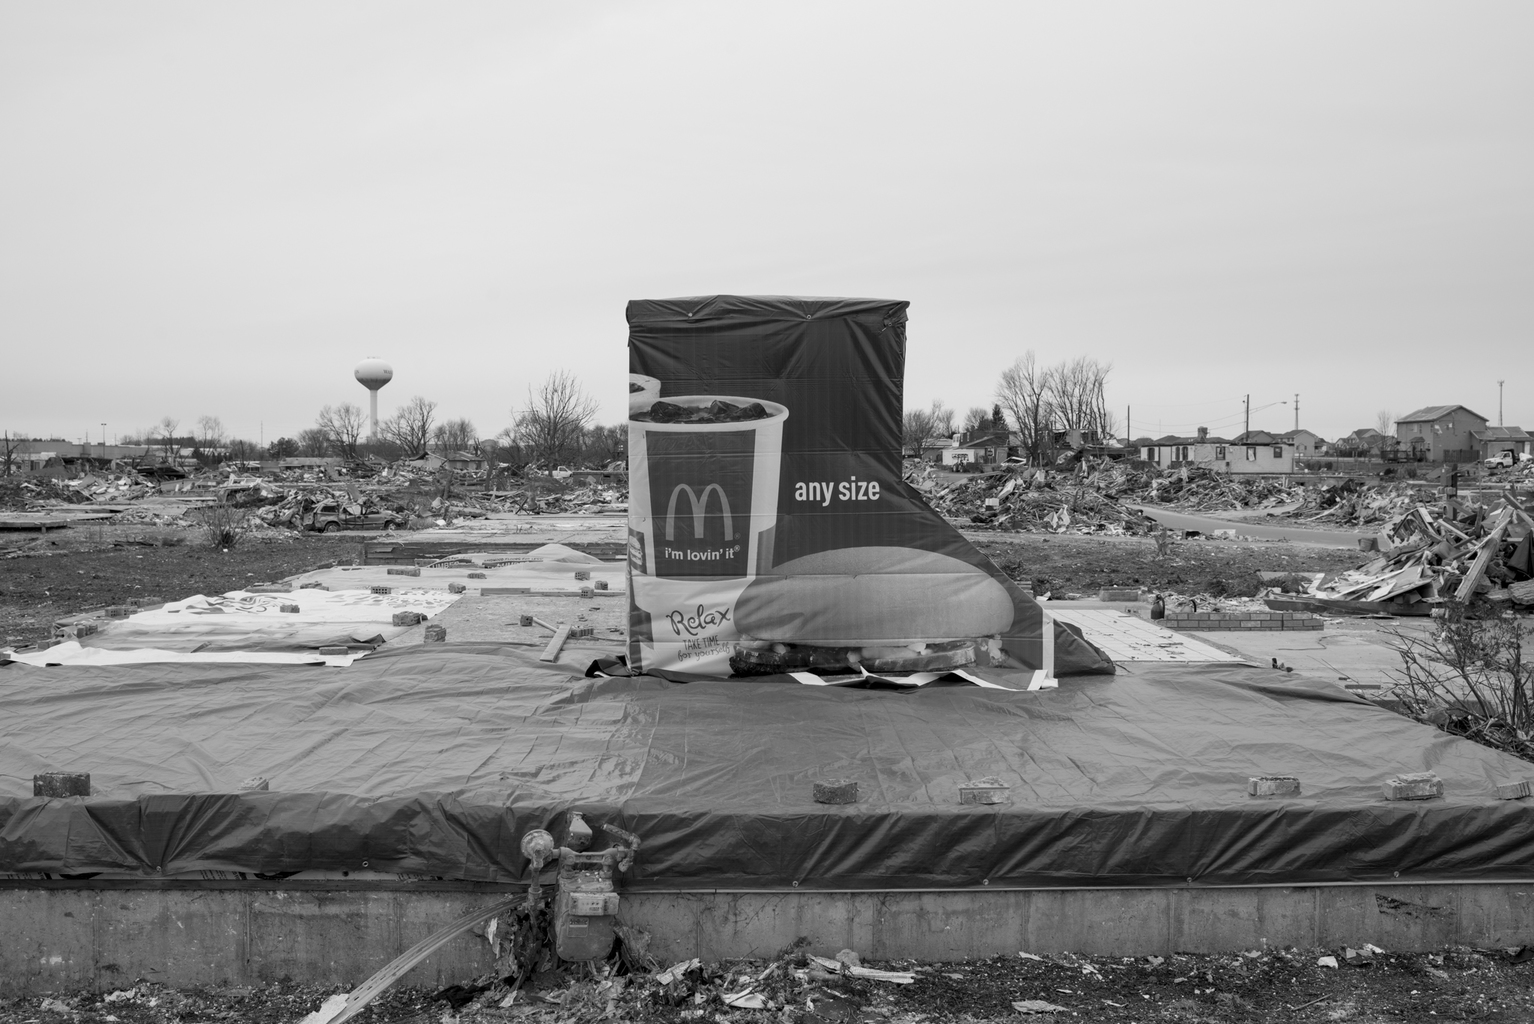 Aftermath, Washington, IL, 2013. ©Timothy Briner